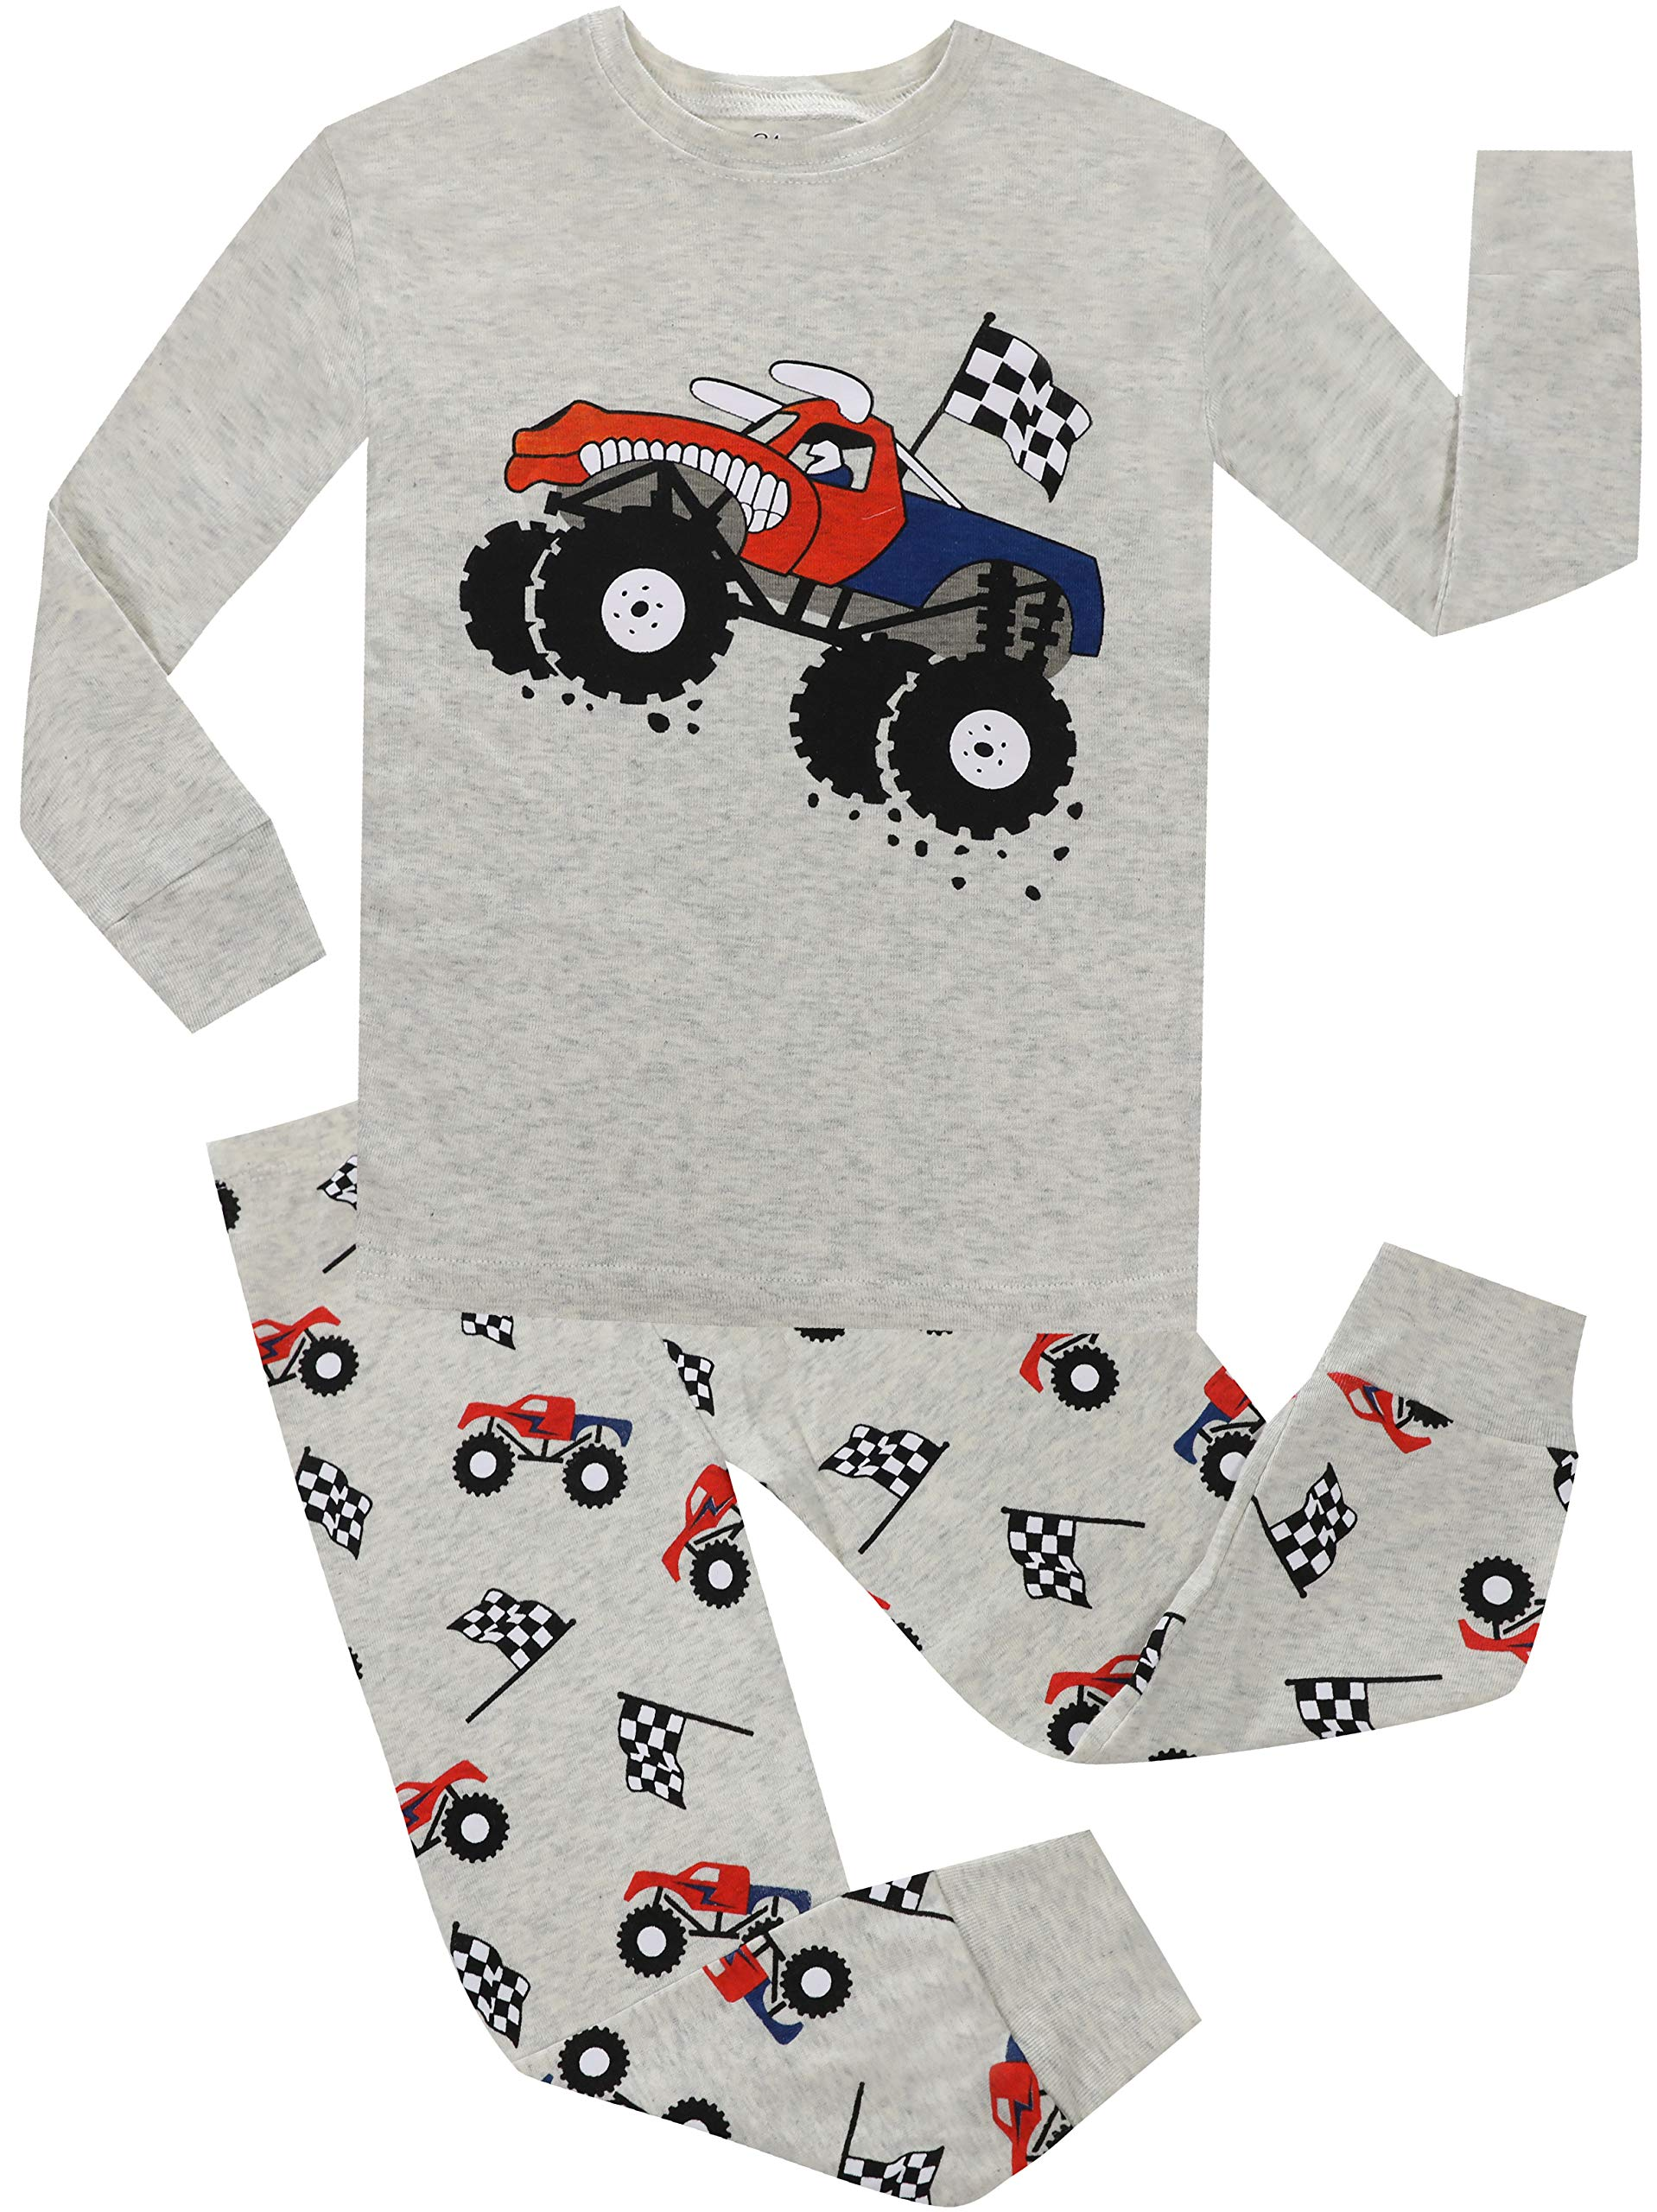 Pajamas for Boys Car Christmas Clothes 2 Piece PJS Sets 100% Cotton Children Sleepwear Size 7